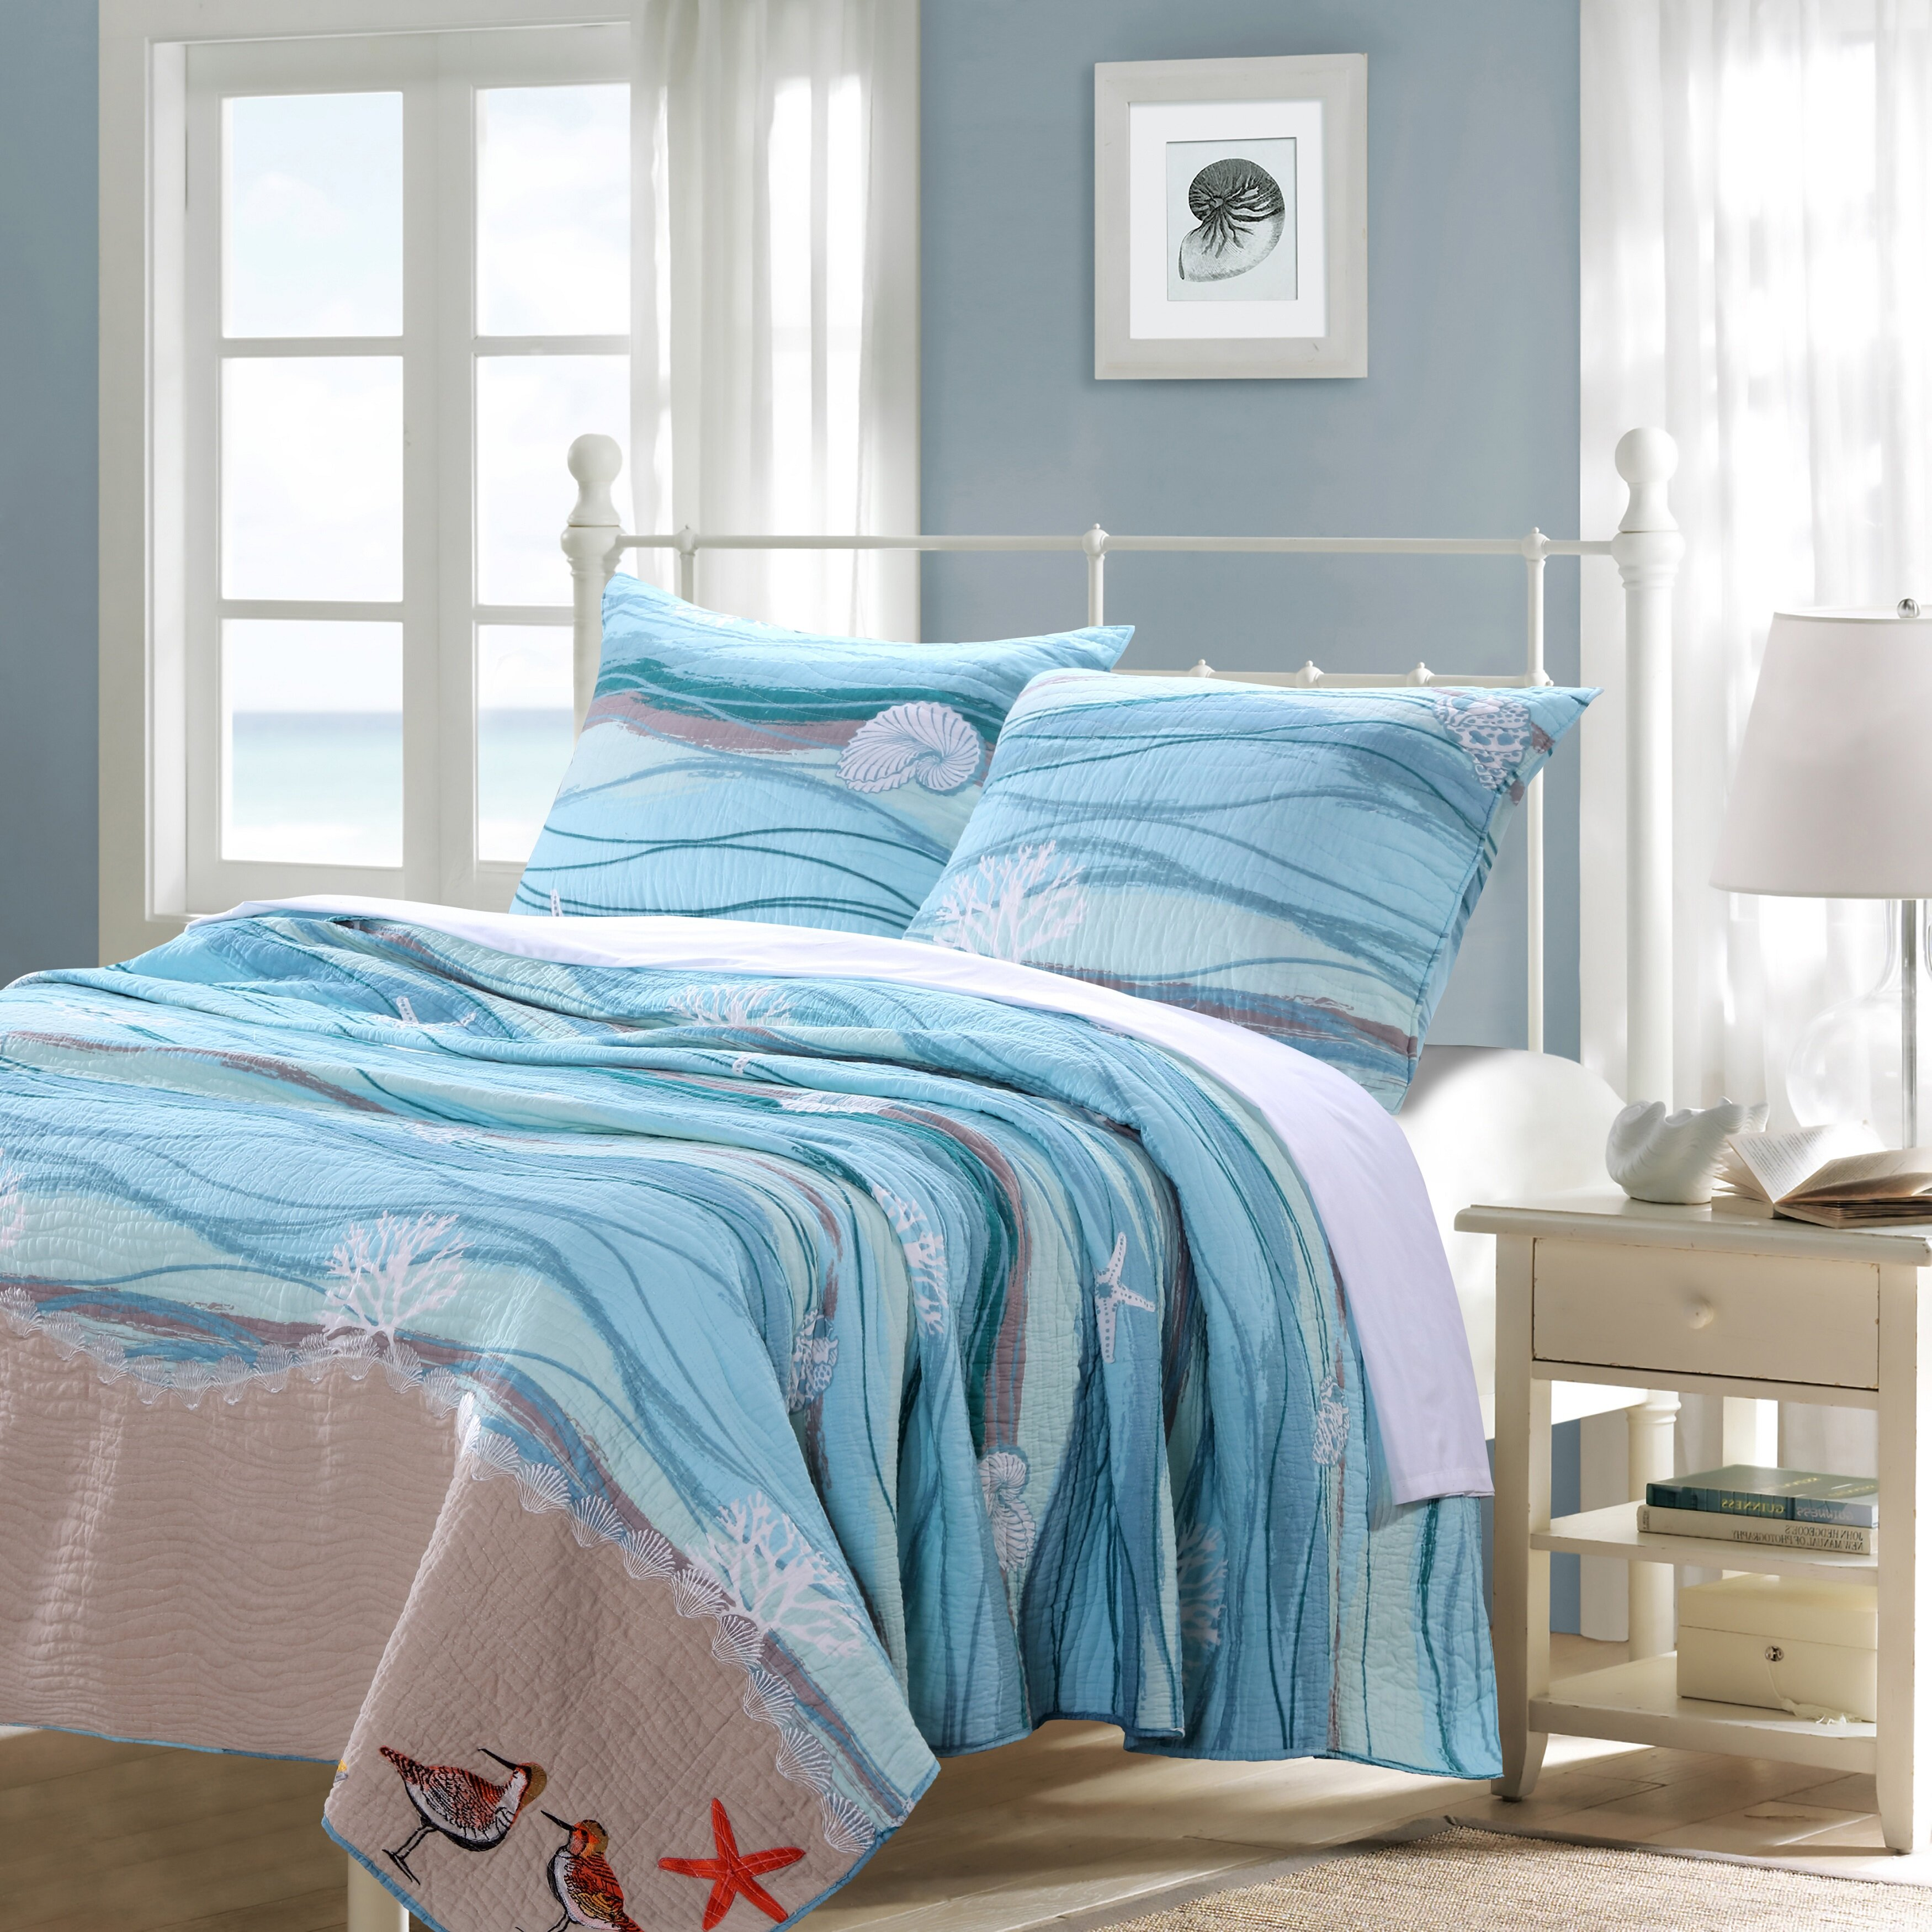 Greenland Home Fashions Maui Reversible Quilt Set